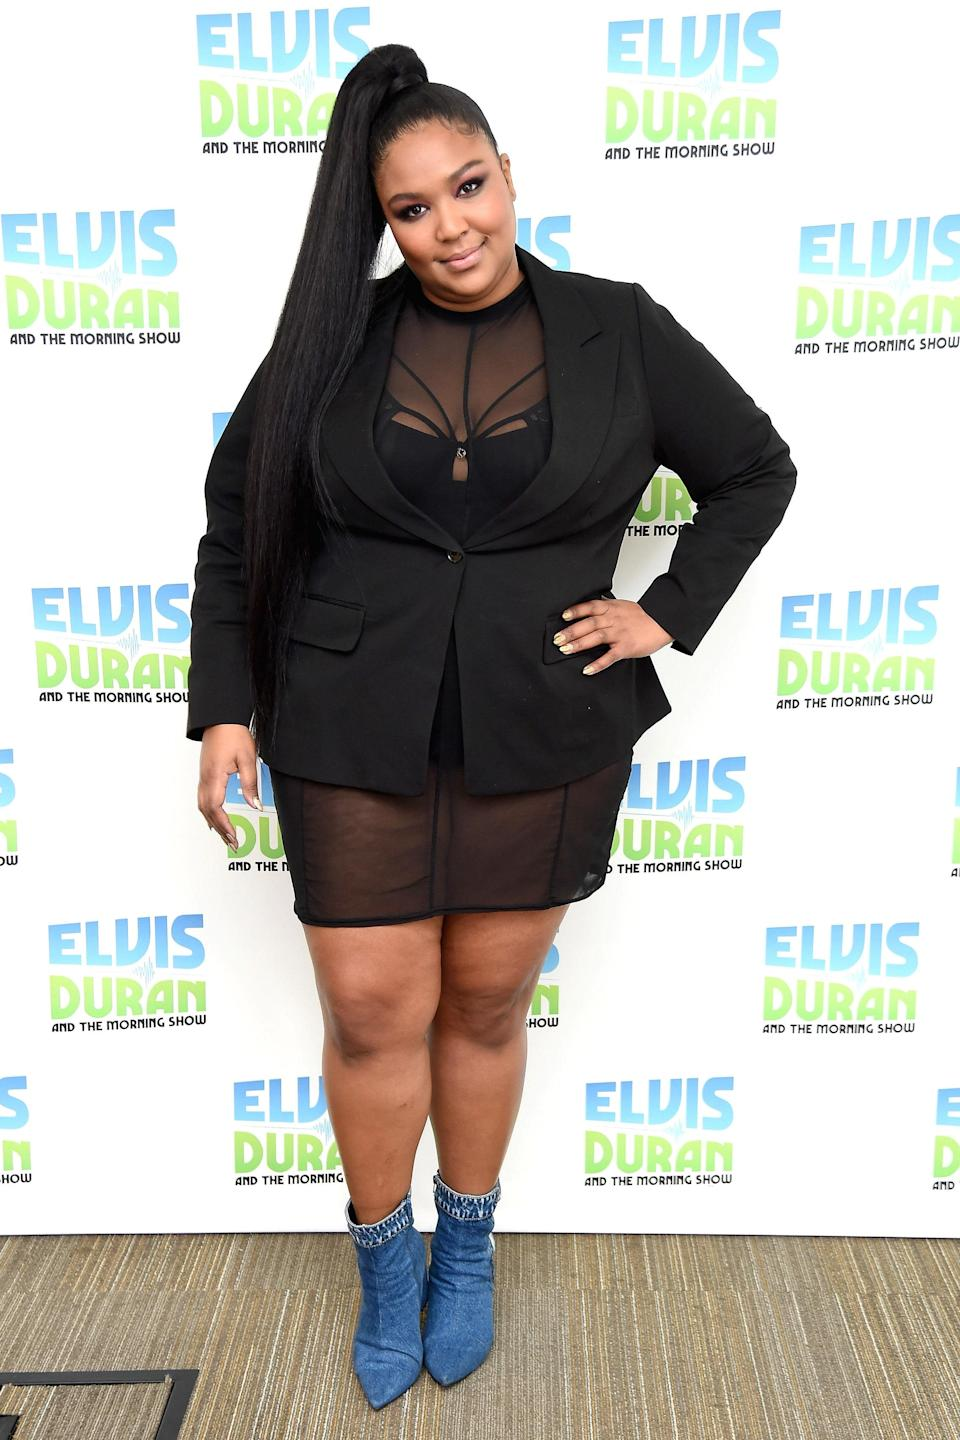 At the beginning of 2019, Lizzo kept it business casual in a black blazer, denim ankle boots, and a sleek, high ponytail.